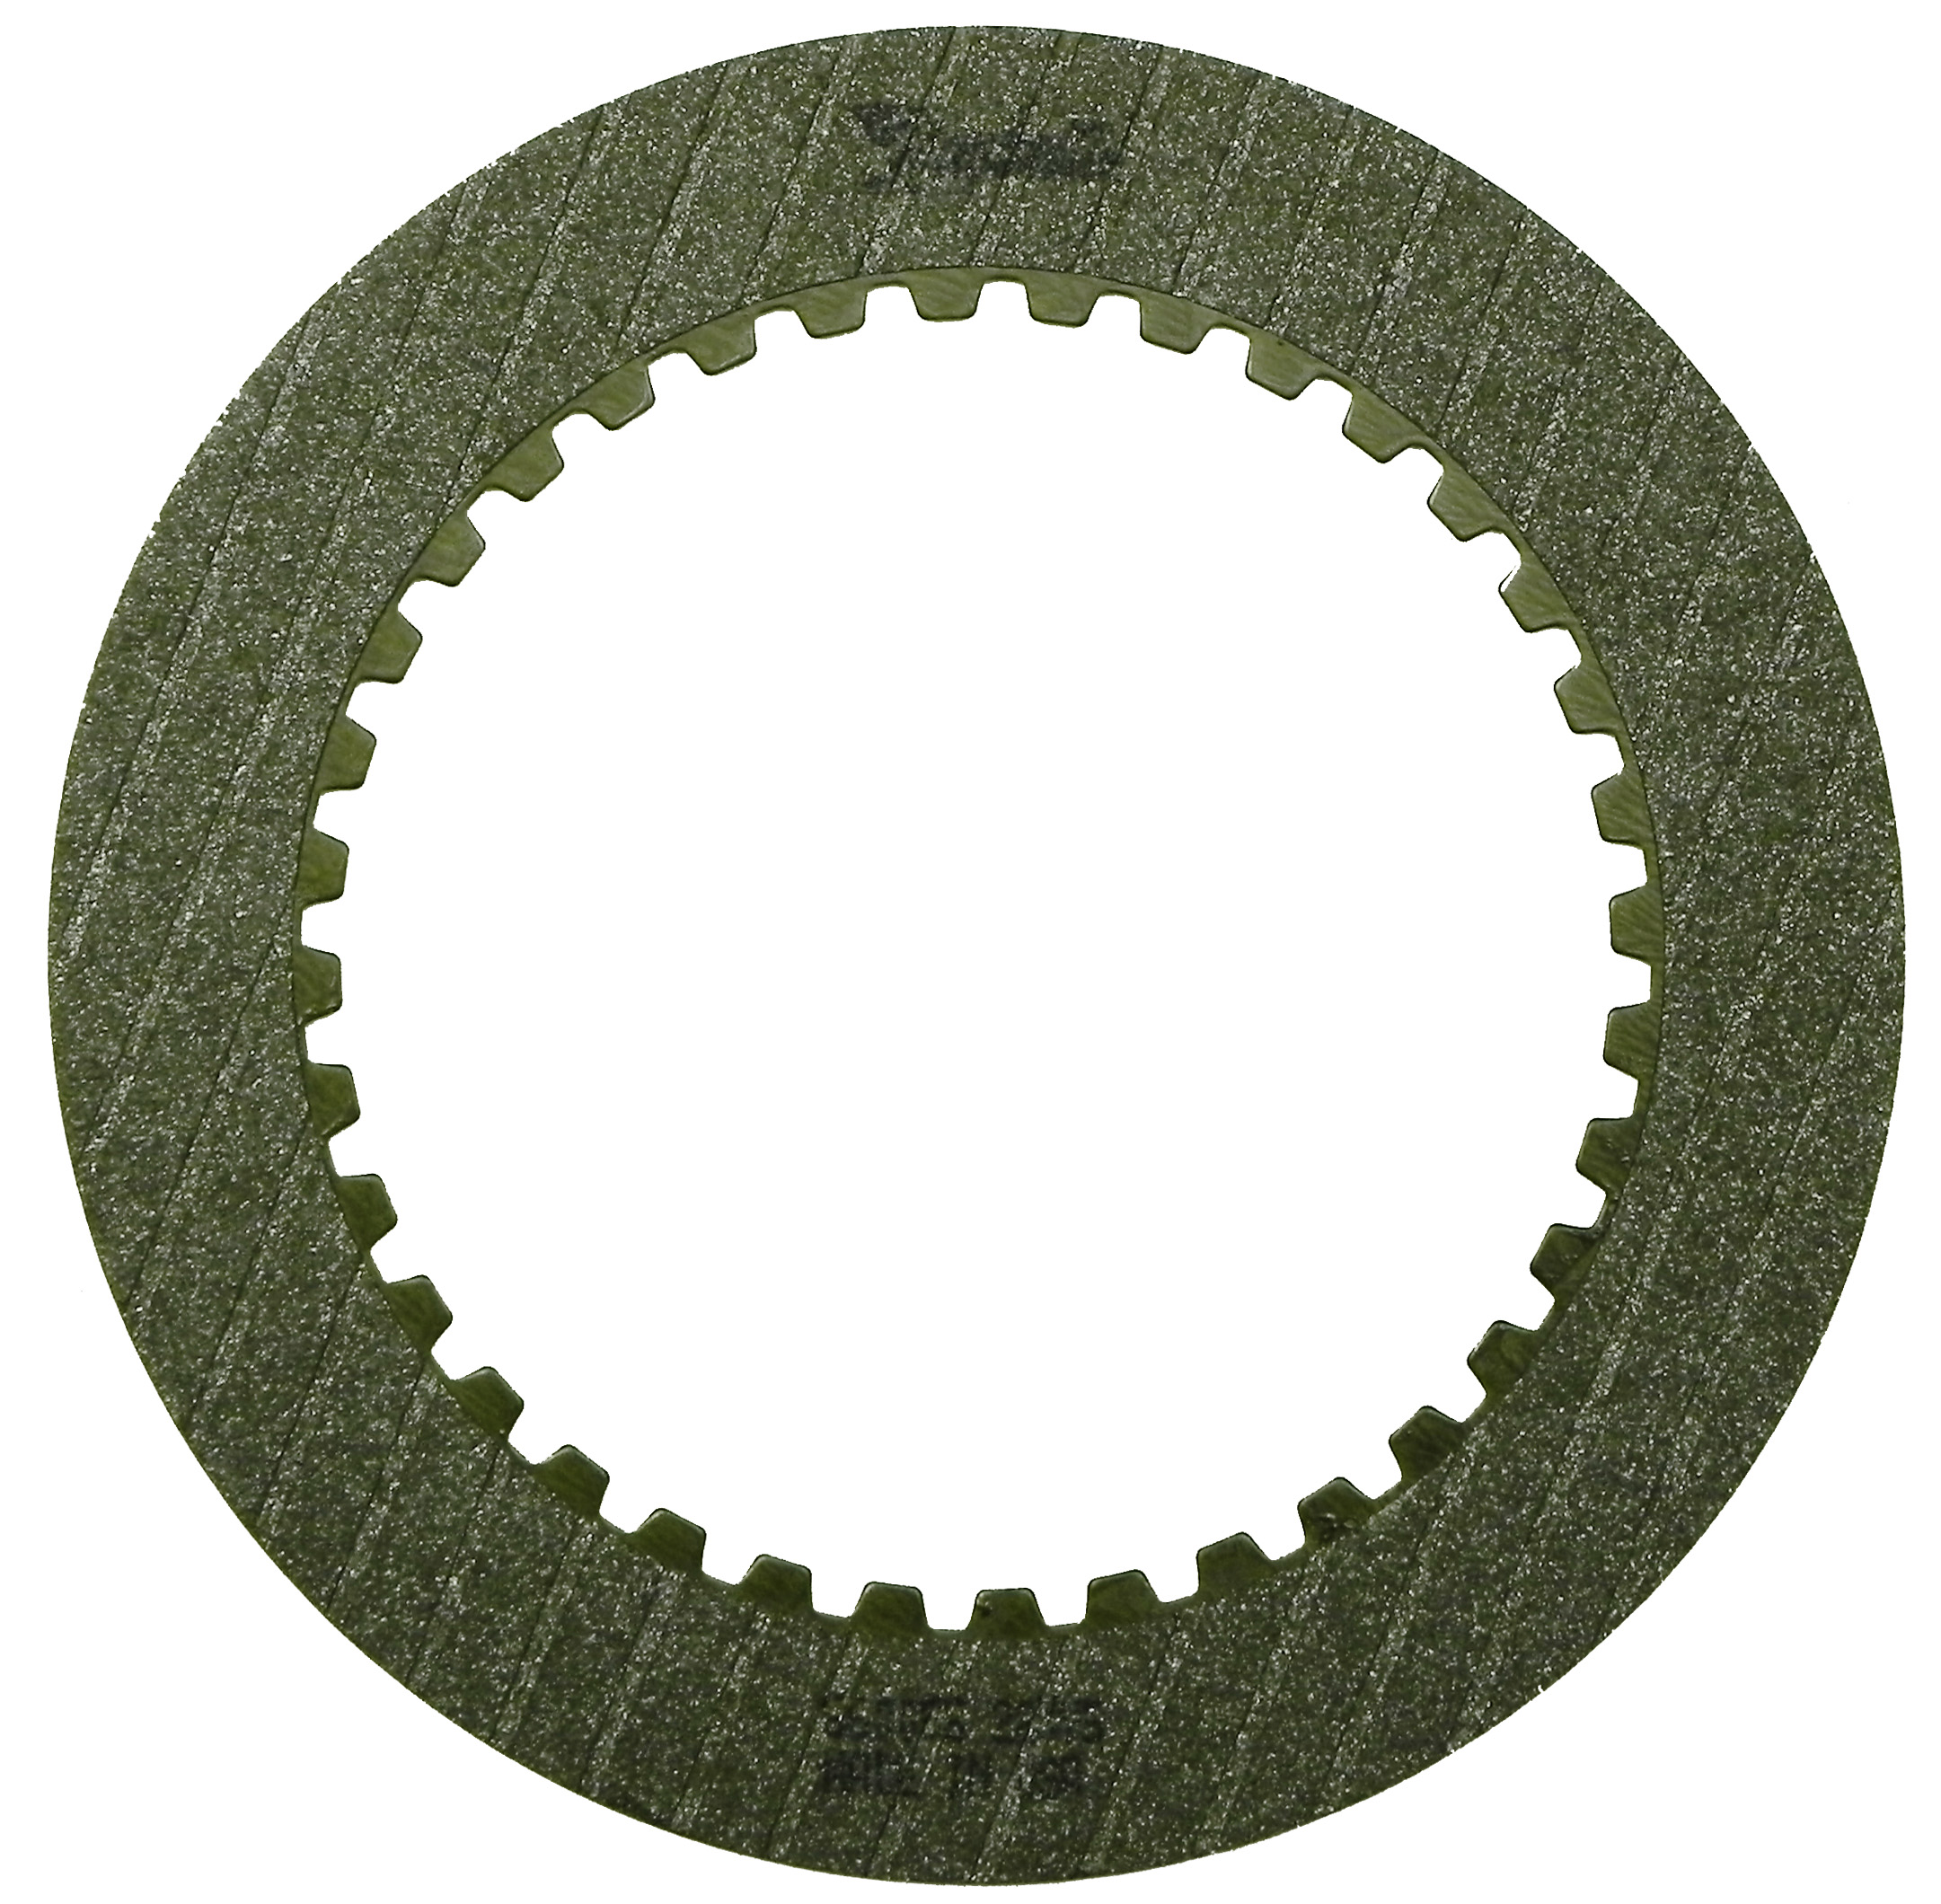 R560055 | 1962-1975 Friction Clutch Plate Graphitic Front, Rear Graphitic